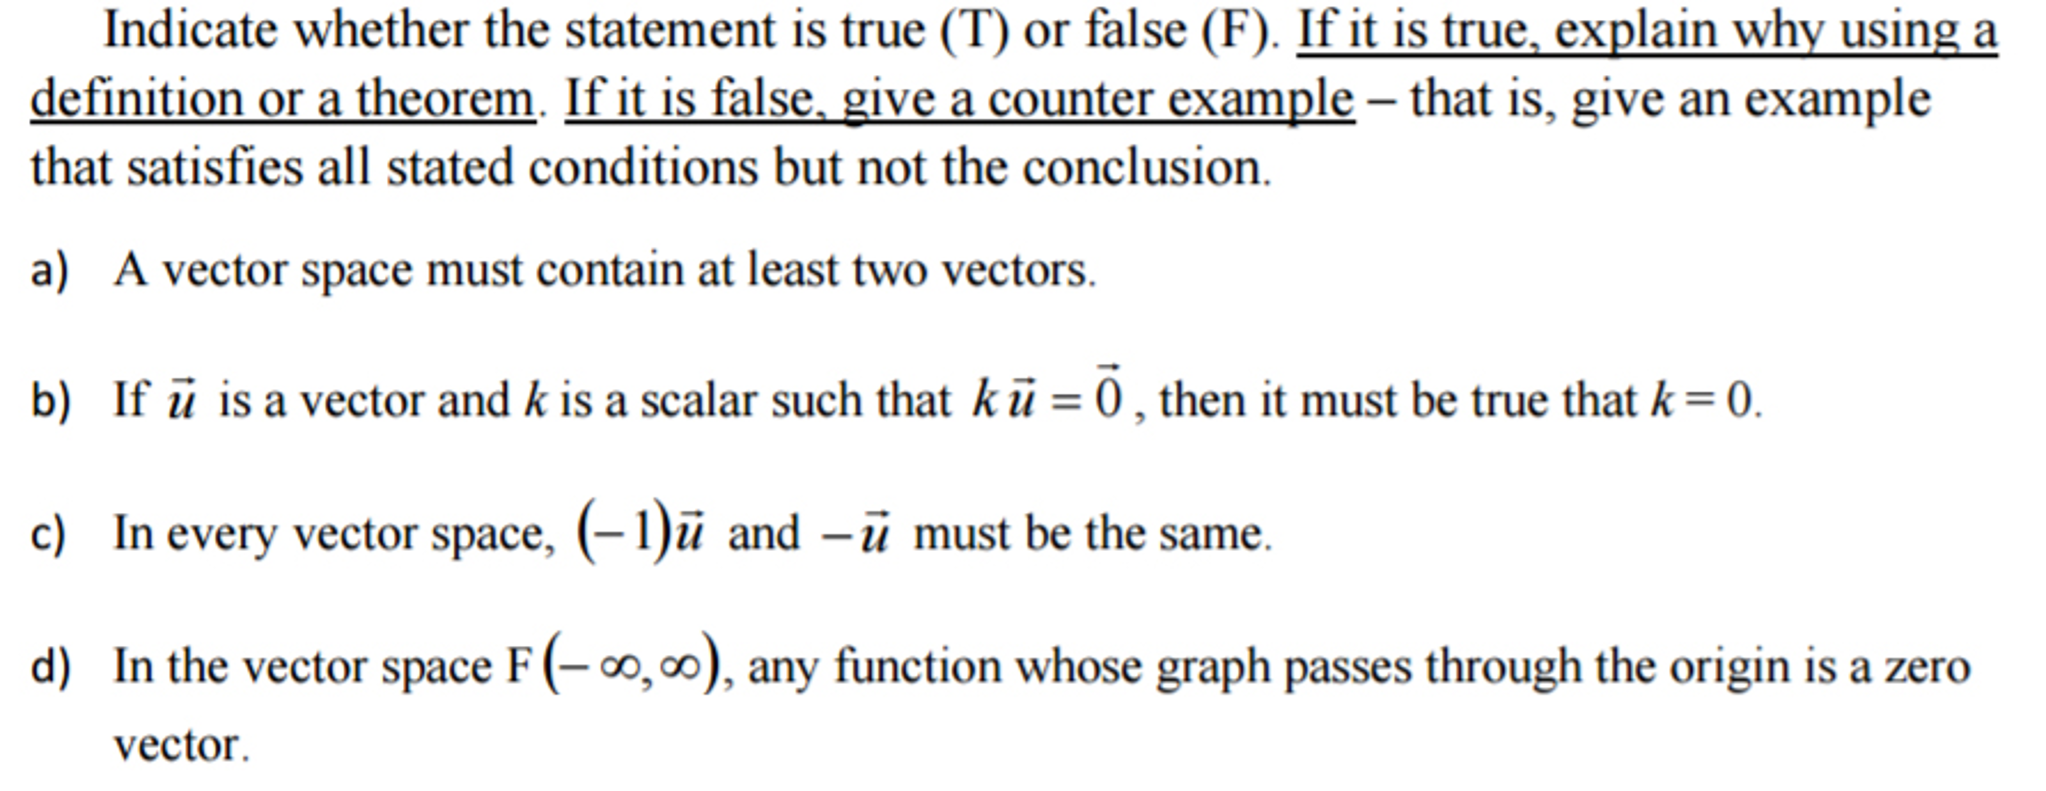 solved: indicate whether the statement is true (t) or fals